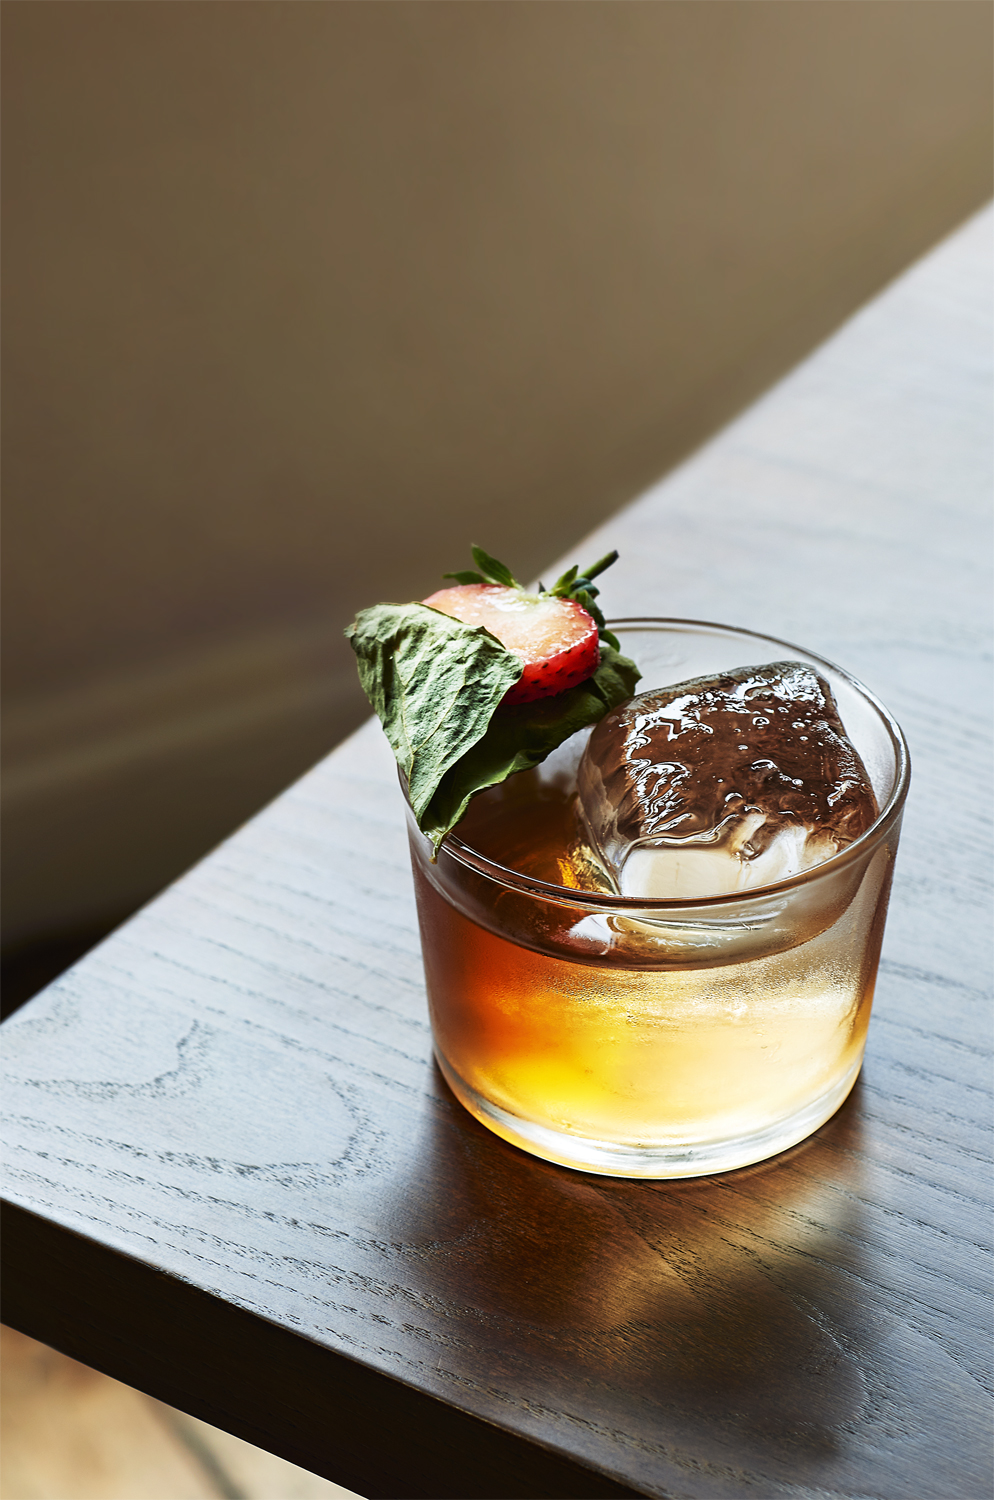 STATESMAN: knotweed - woodford reserve - cocchi americano - fermented Strawberry